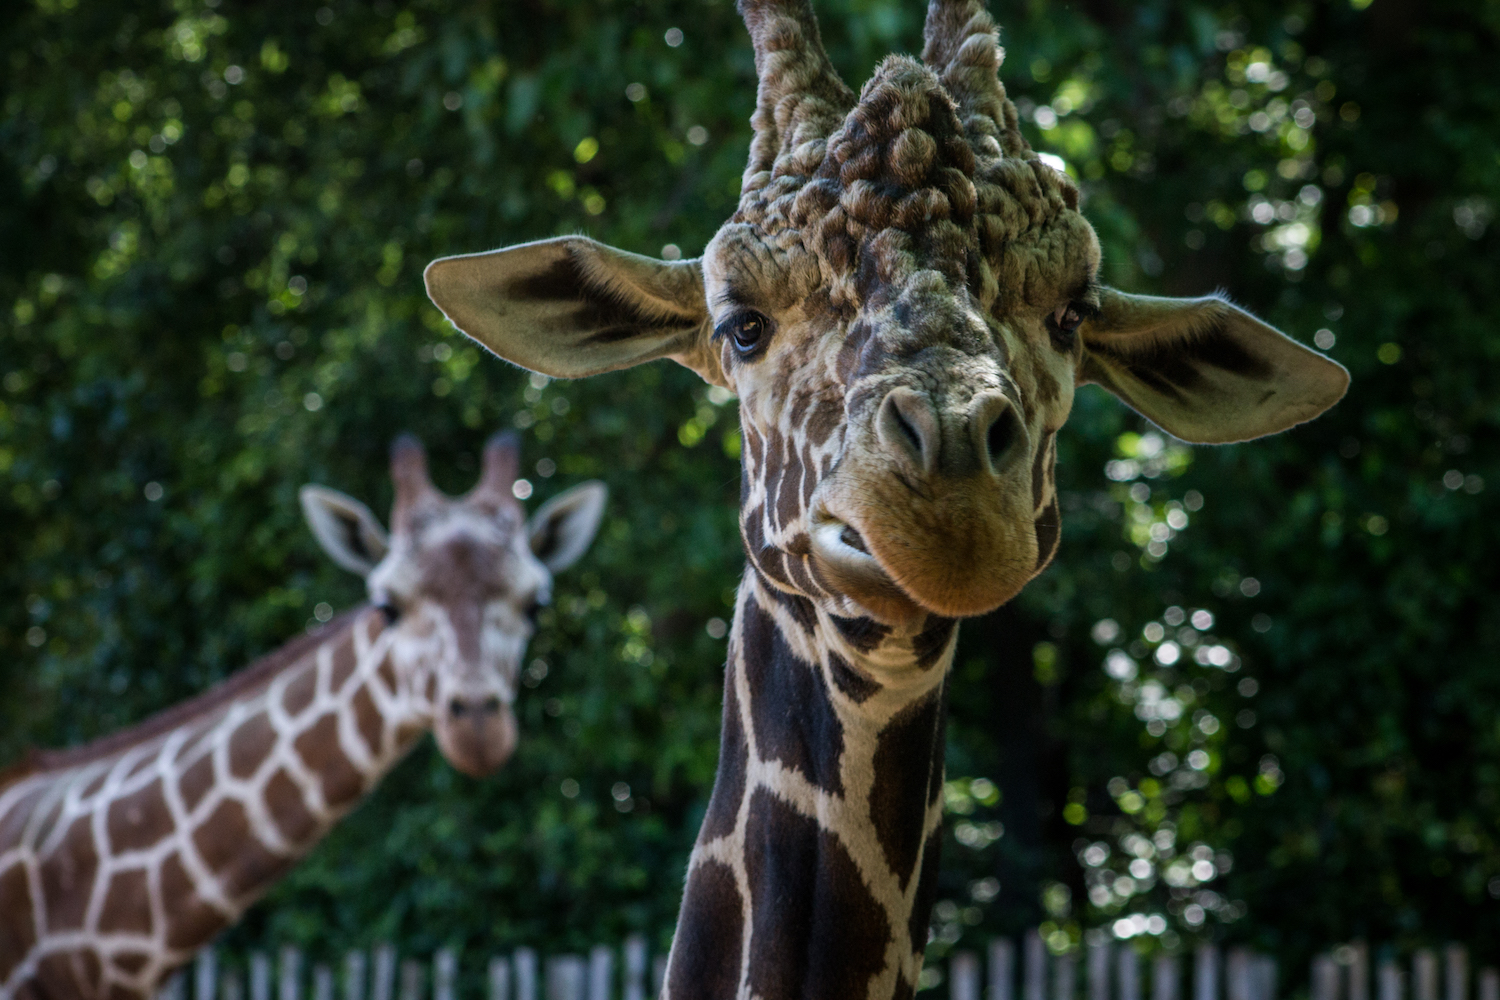 Giraffe and Friend, Atlanta Zoo, Canon DSLR